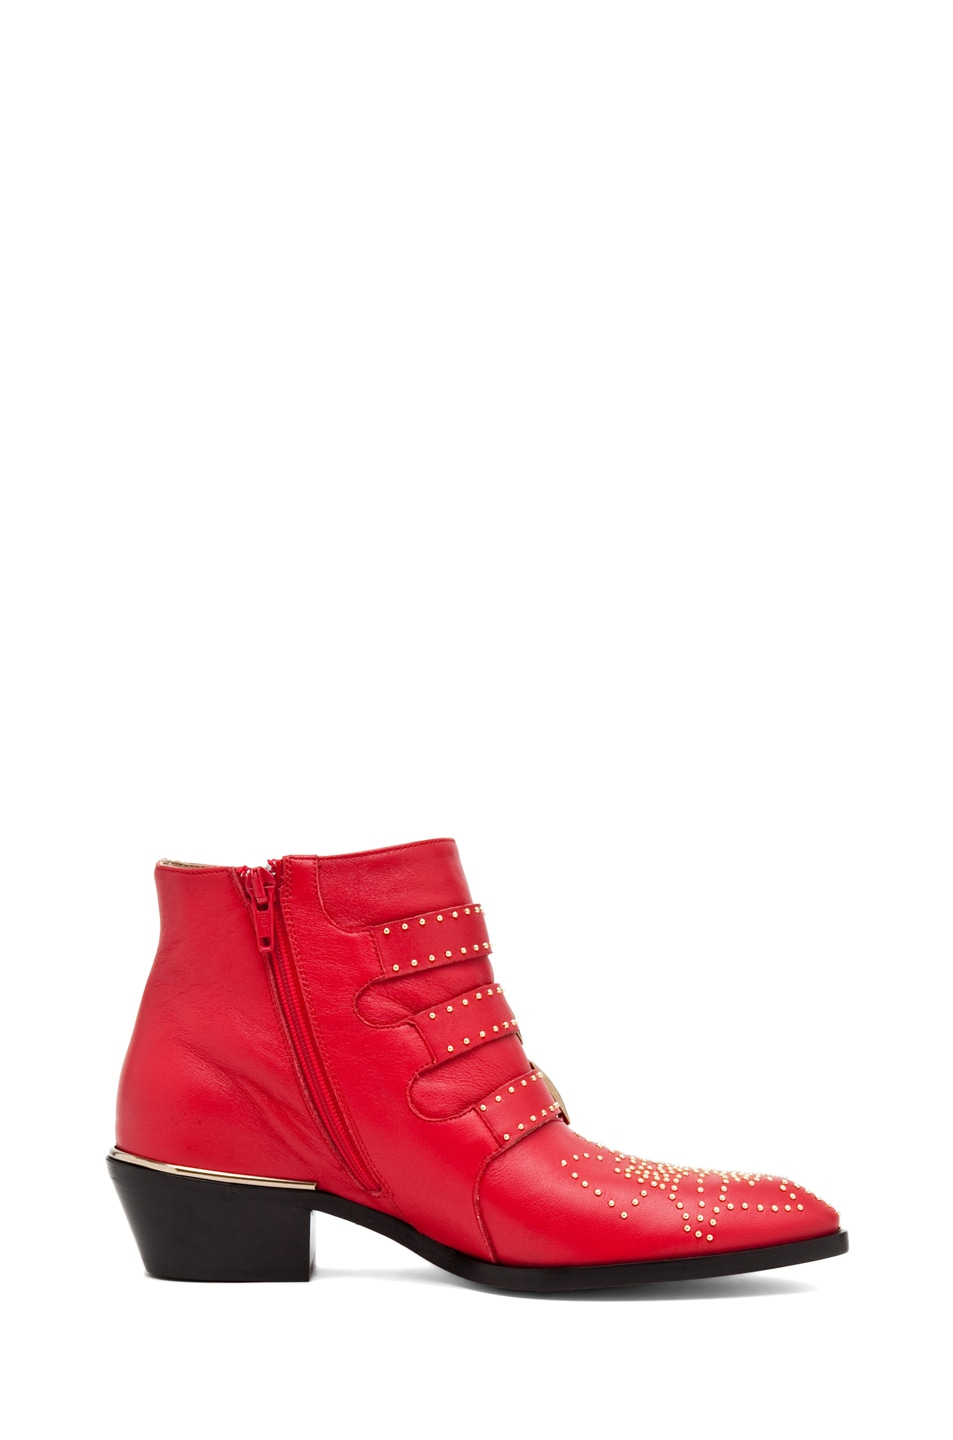 Image 5 of Chloe Susanna Leather Studded Booties in Red